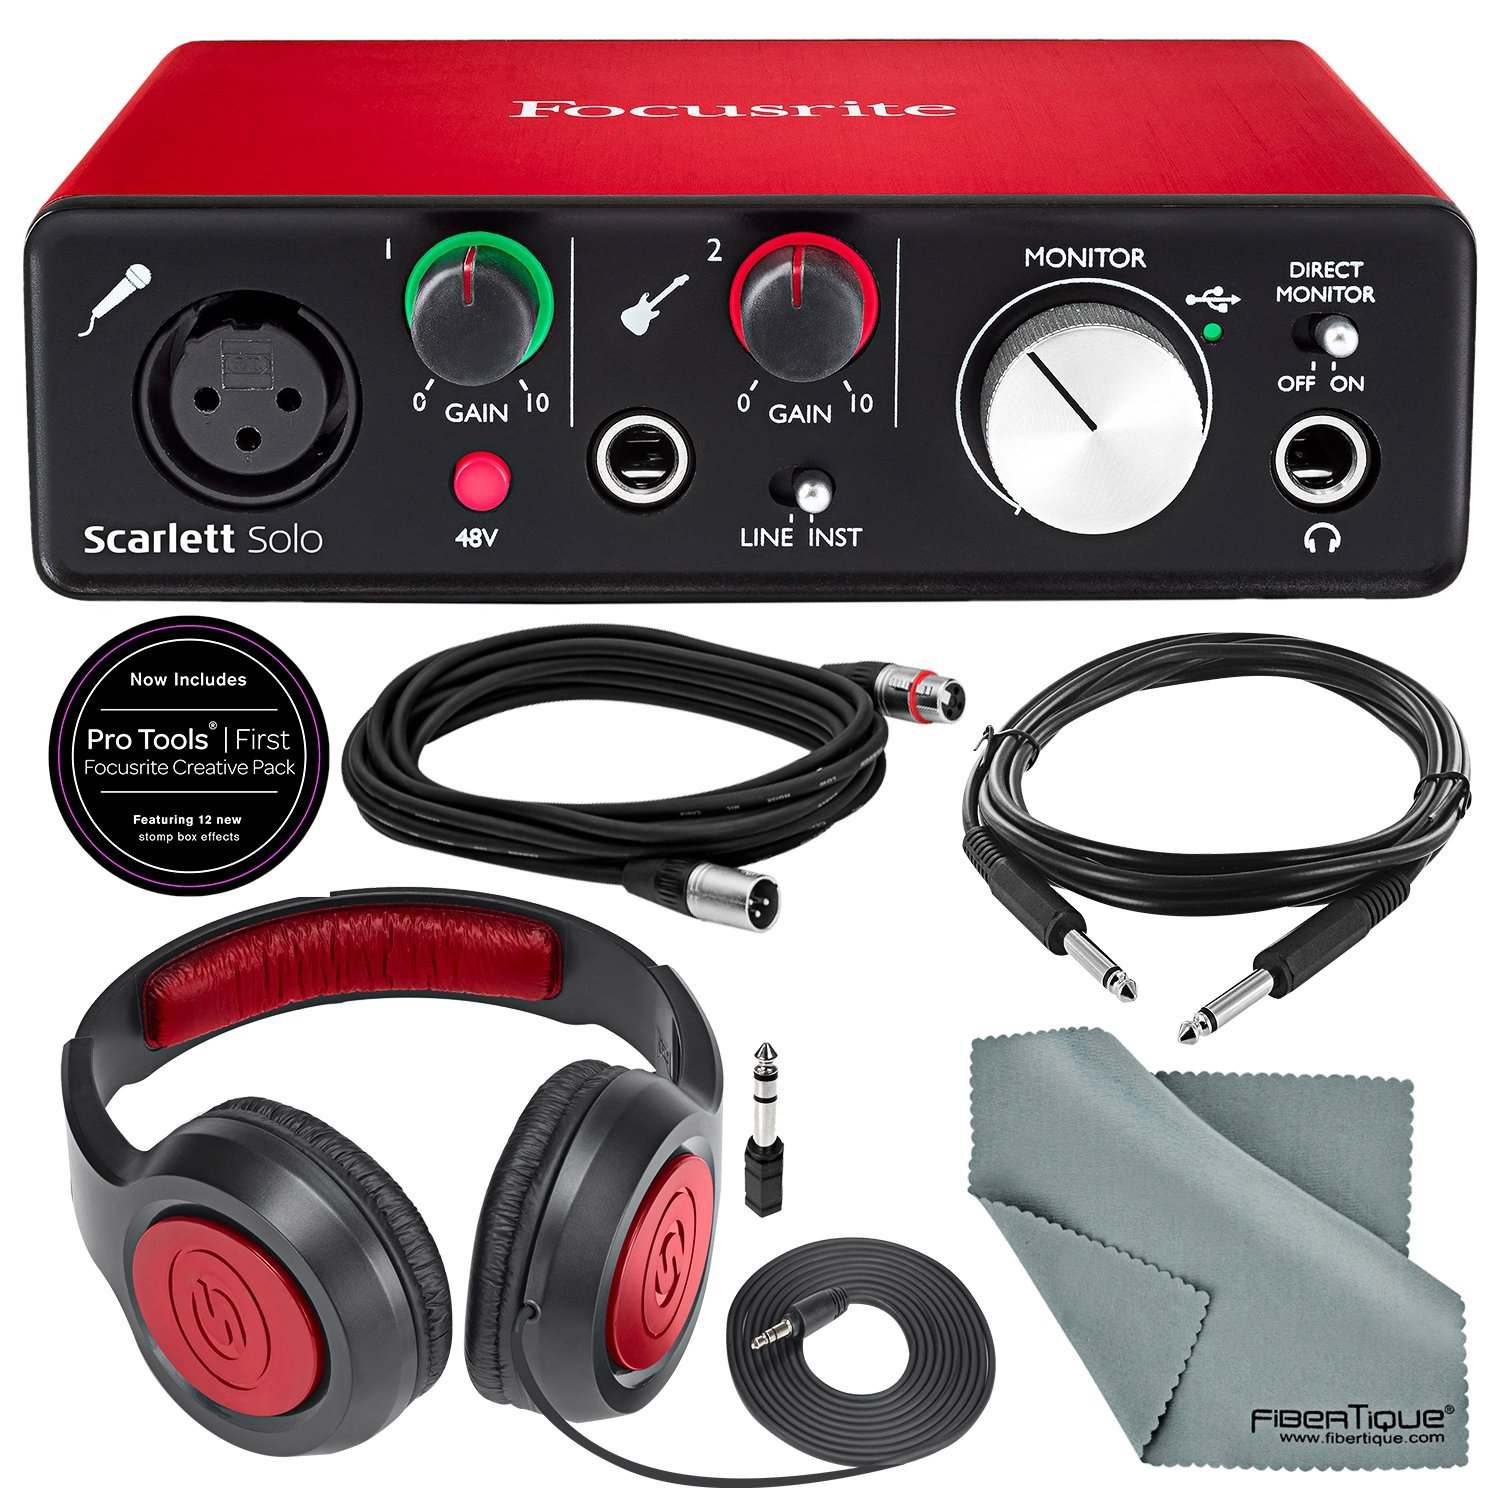 Focusrite Scarlett Solo USB Audio Interface (2nd Generation) Bundle with XLR Cable + 1/4 Inch Cable + Samson Studio Headphones + FiberTique Cleaning cloth 4334426833